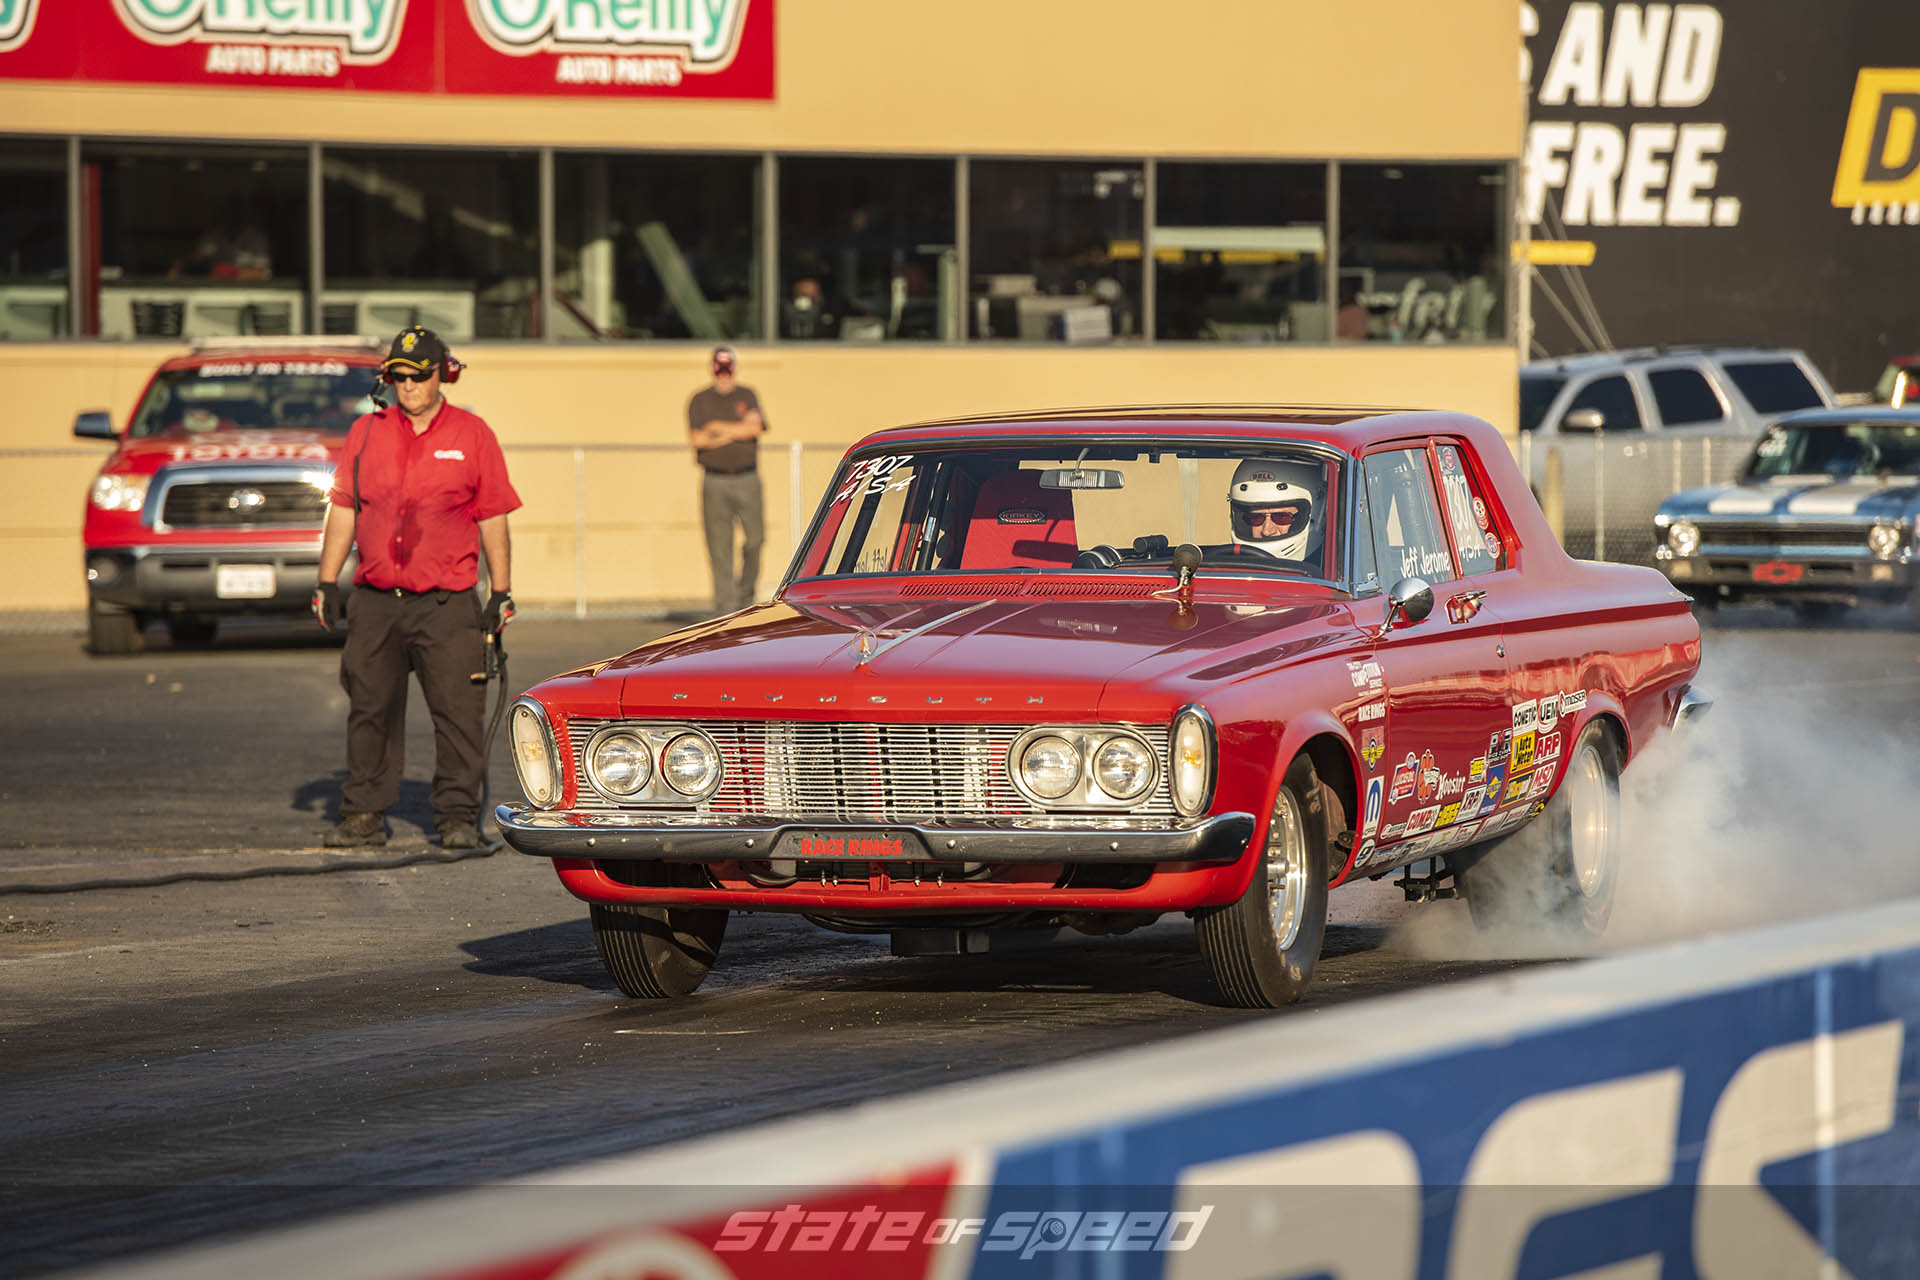 Plymouth Belvedere Max Wedge on the drag strip